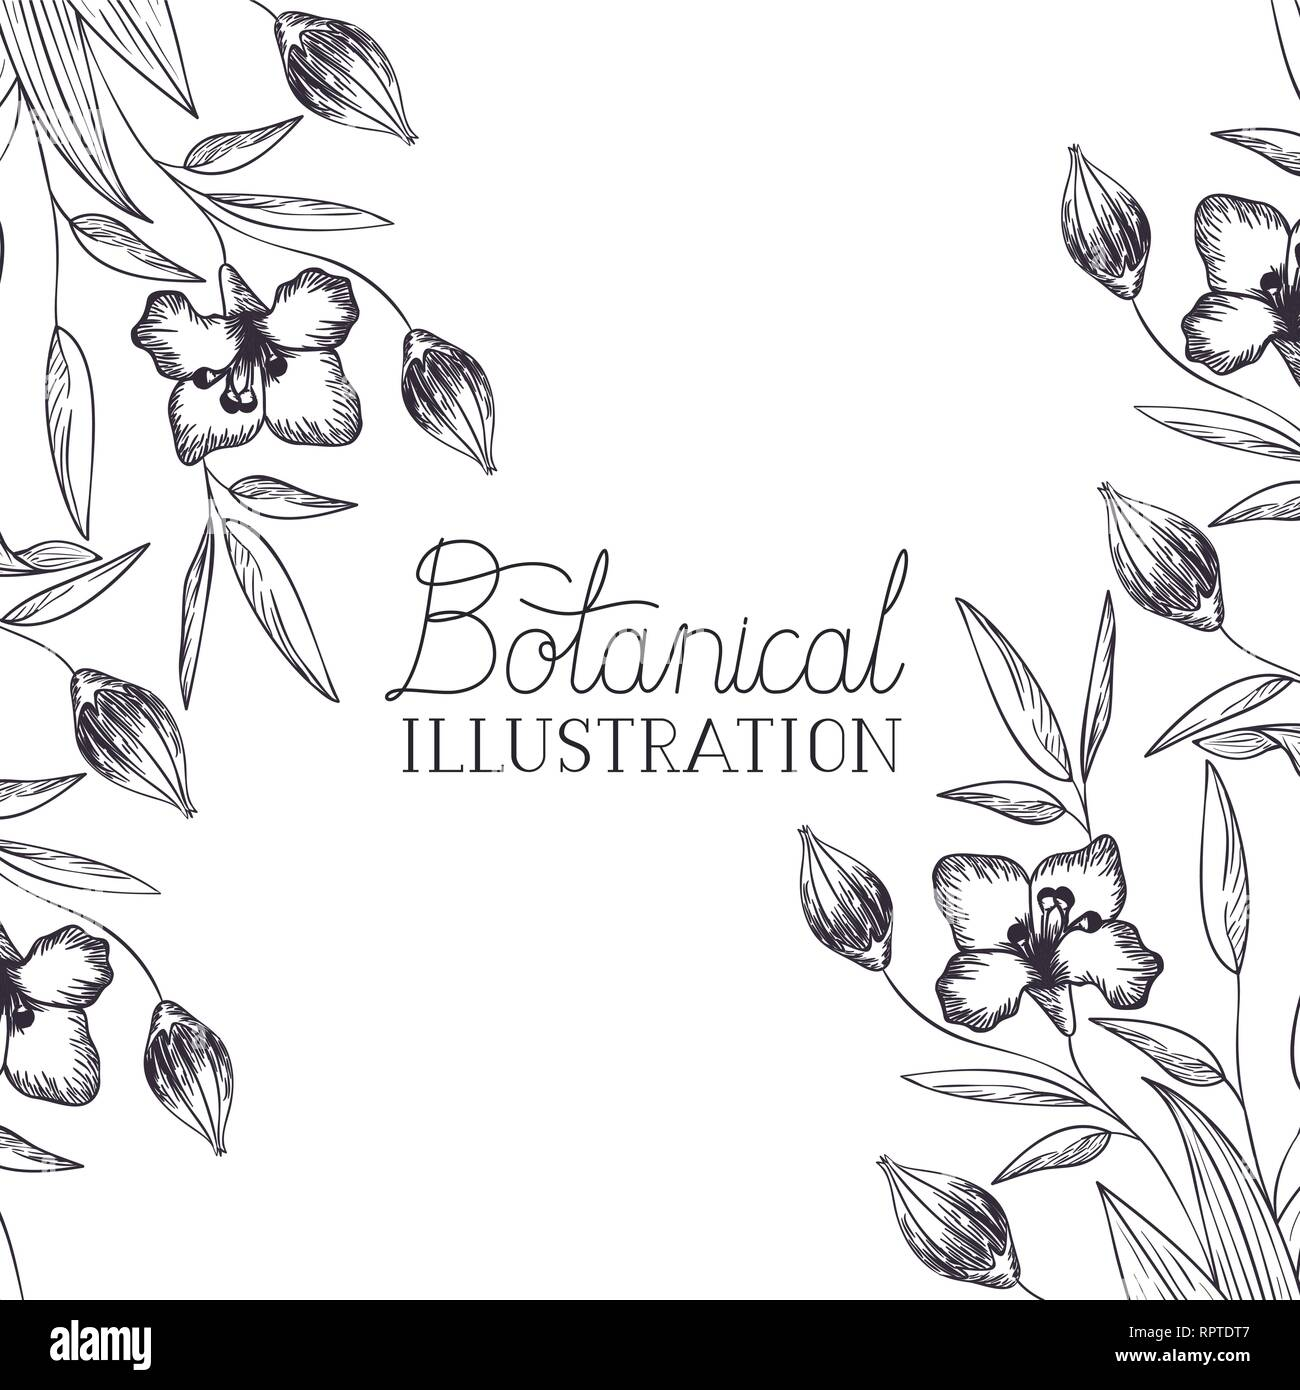 botanical illustration label with plants - Stock Vector